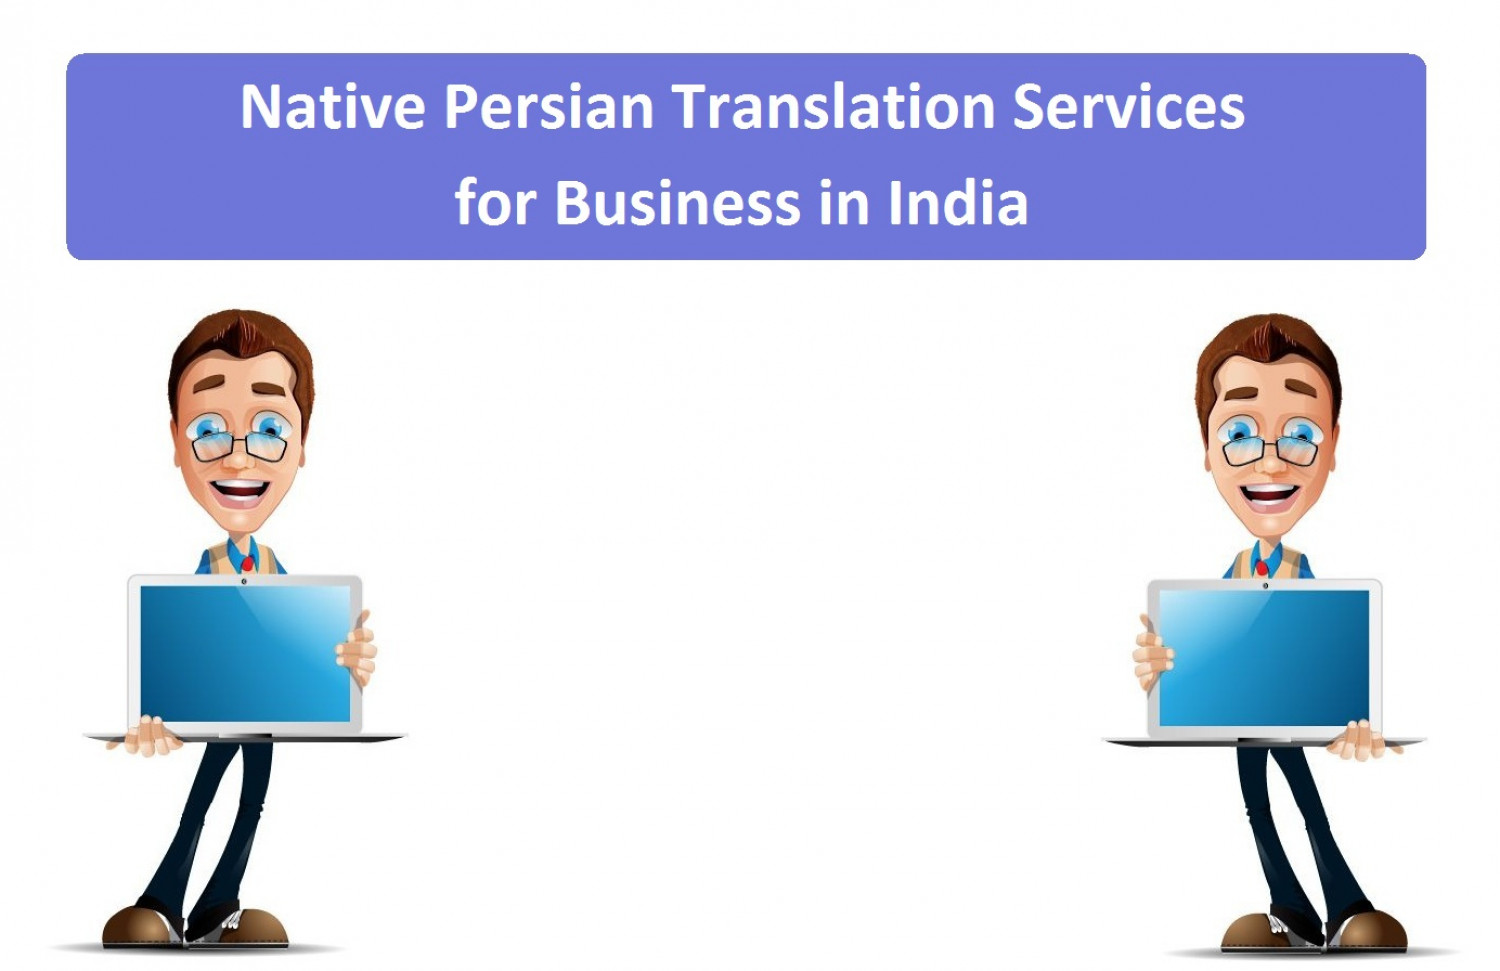 Native Persian Translation Services for Business in India Infographic